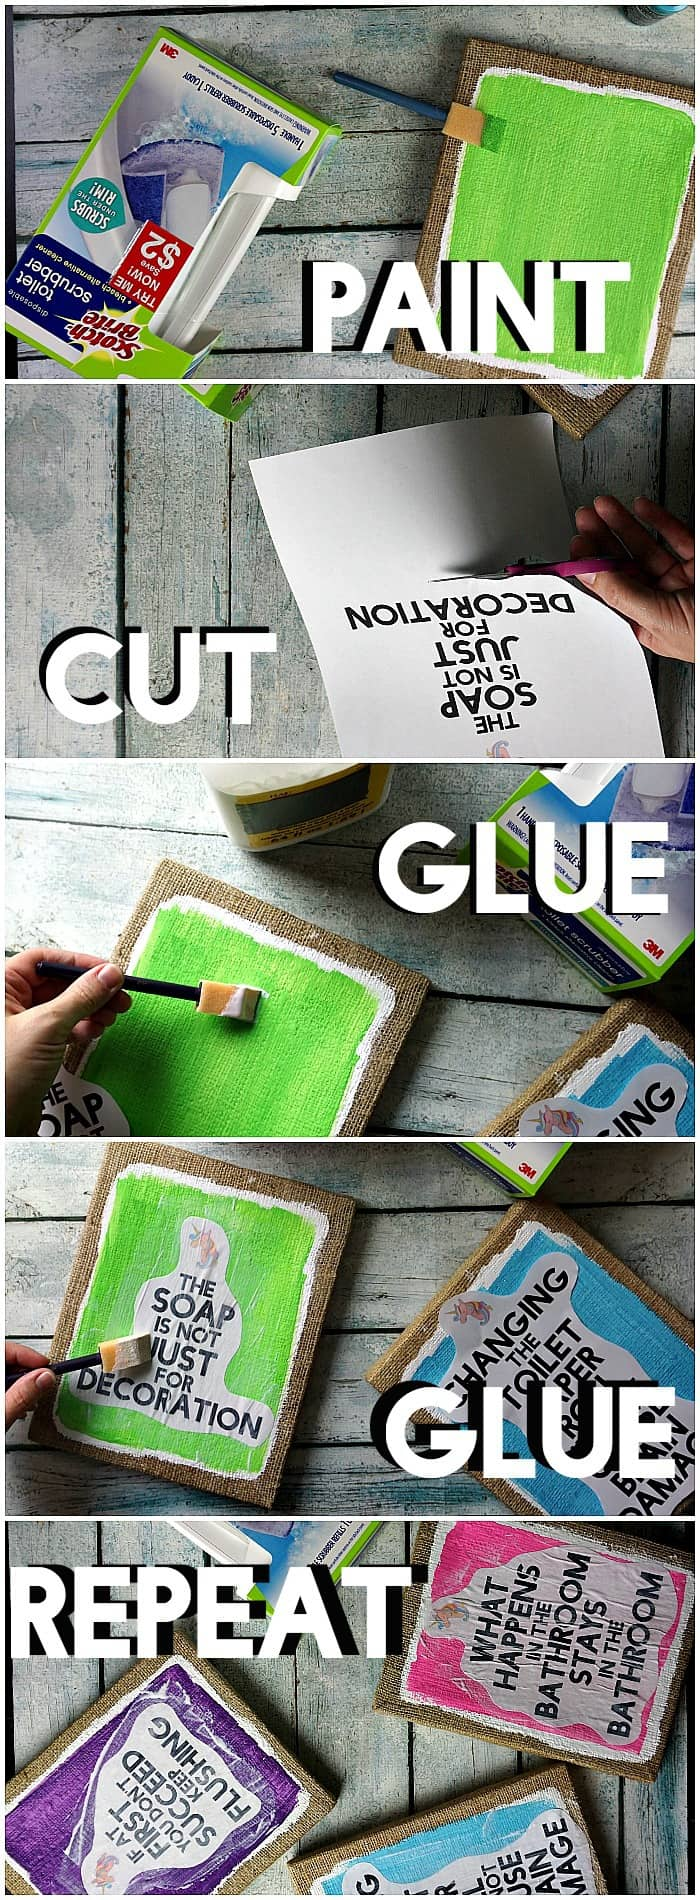 Tutorial for making DIY bathroom art with funny sayings